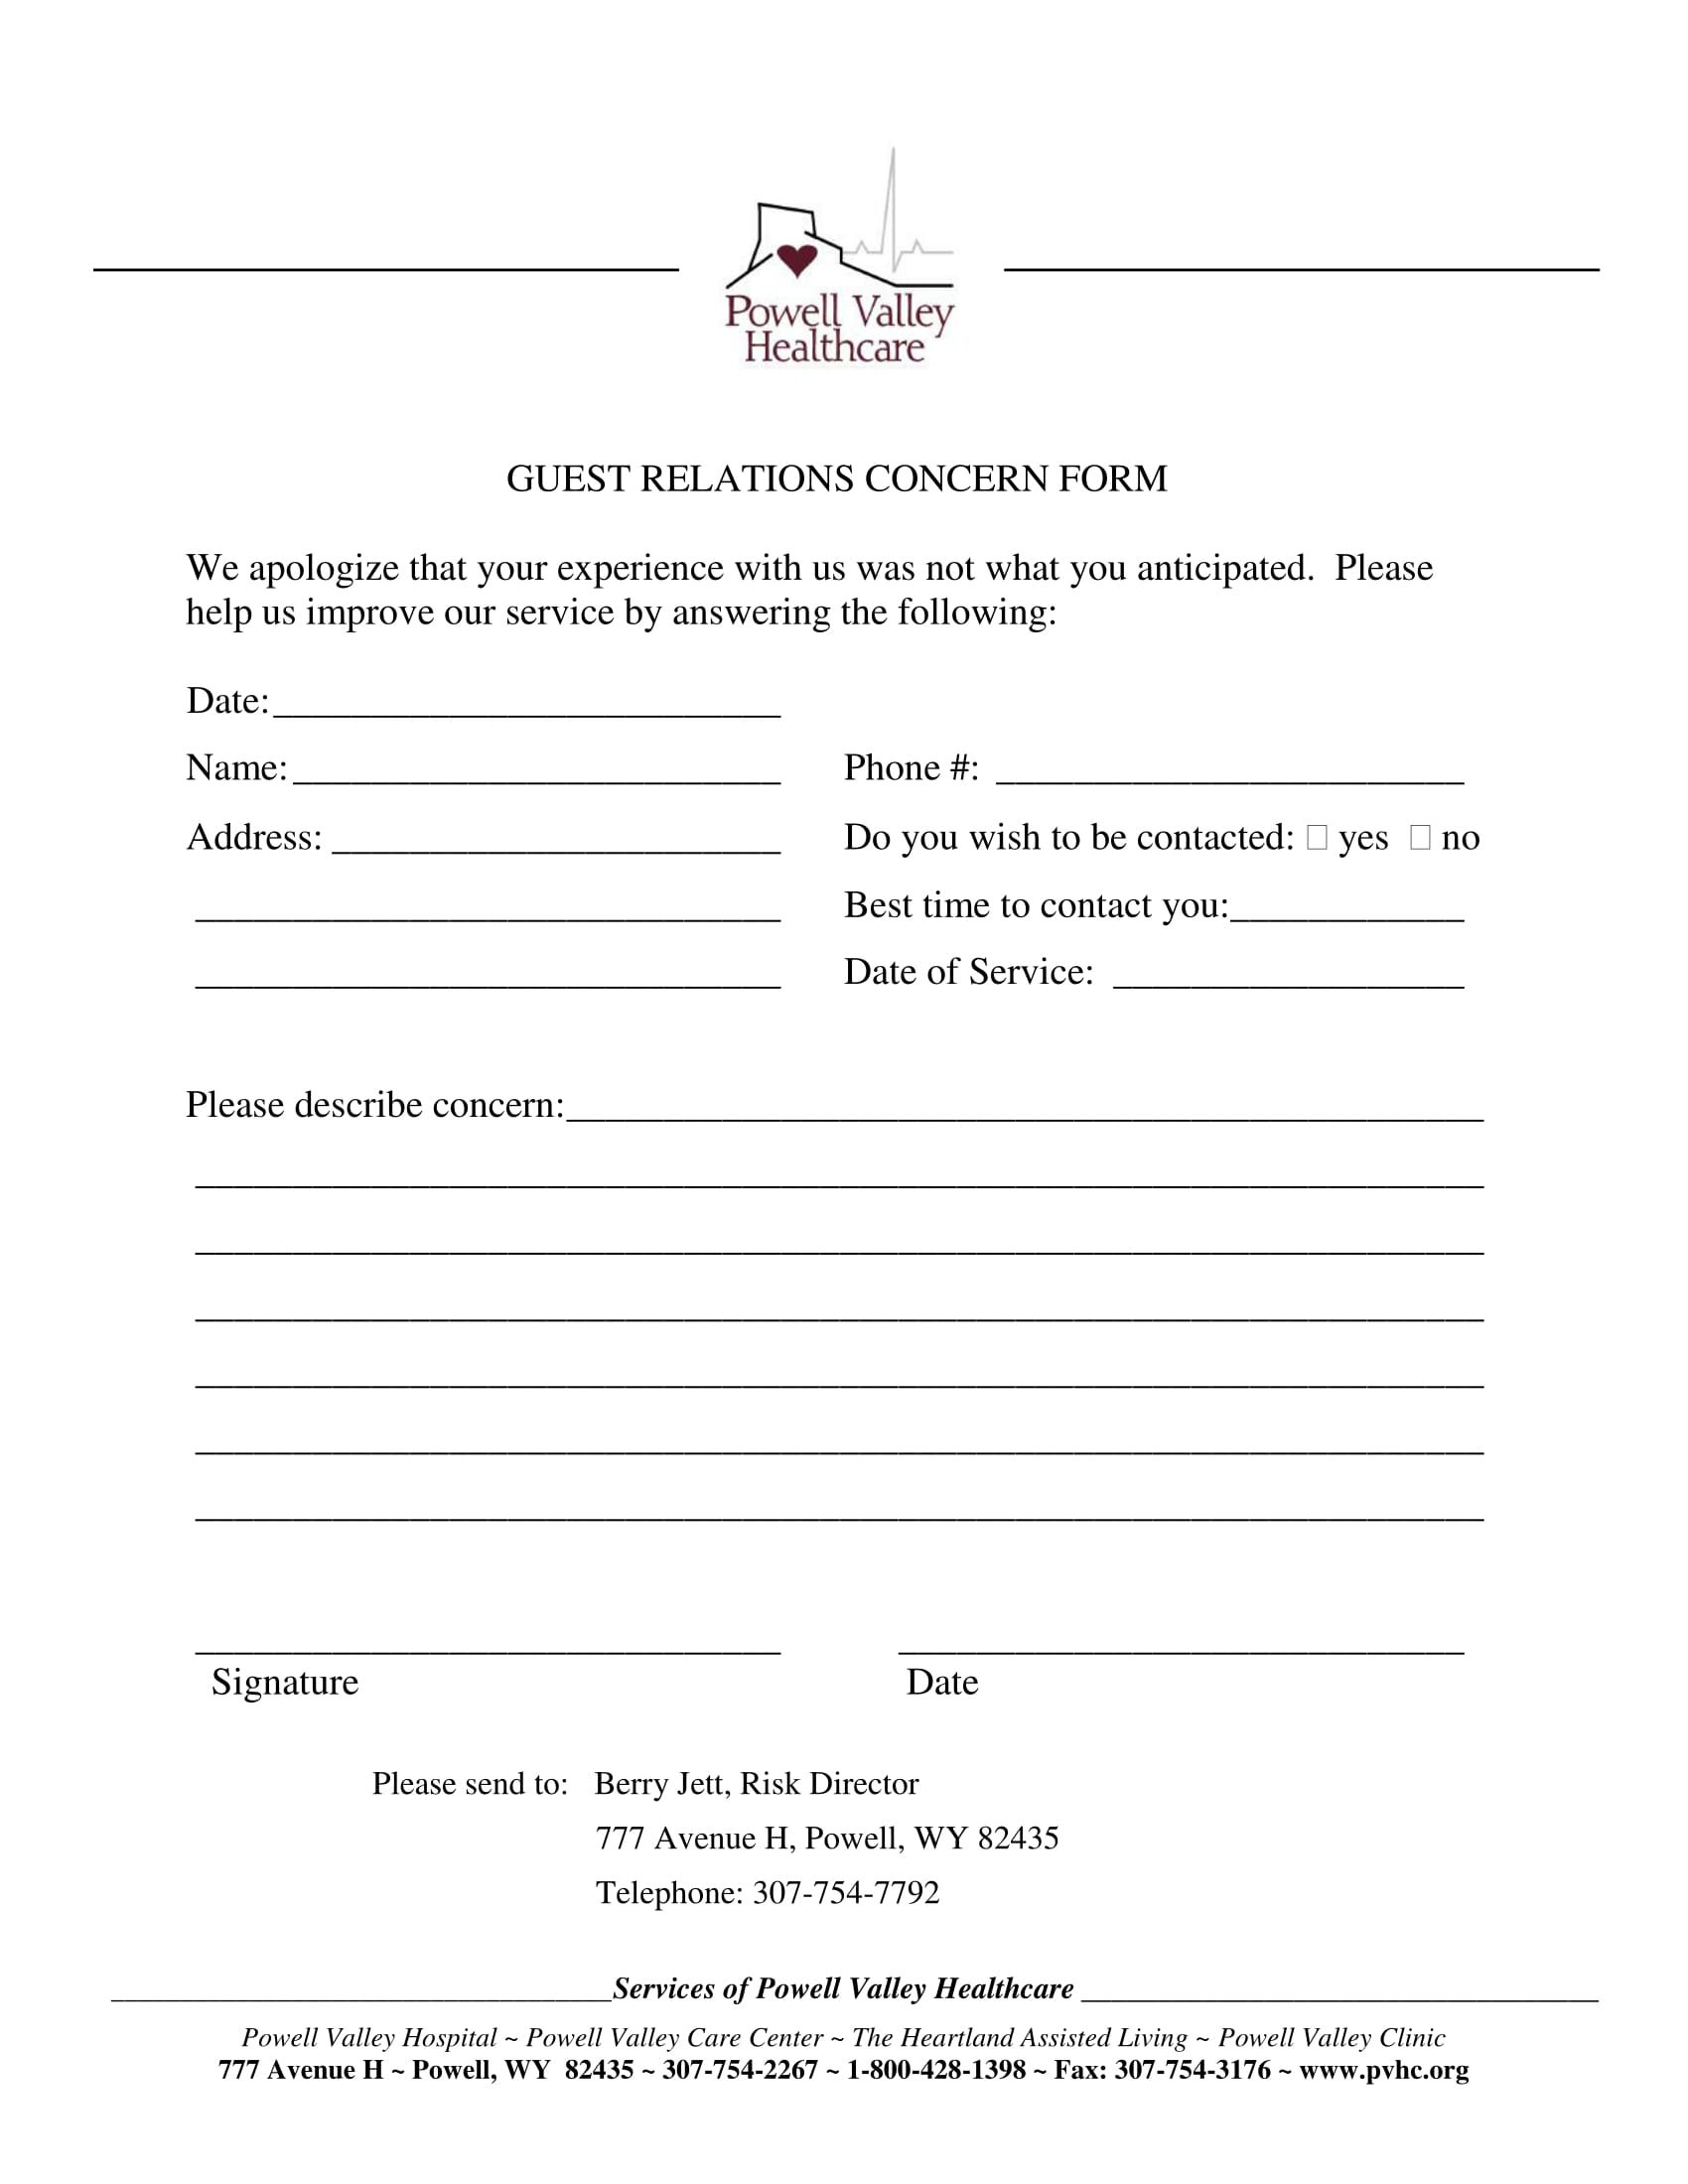 20 types of complaint forms for customers service providers hotel guests complaint form sample guest concern complaint form 1 altavistaventures Gallery